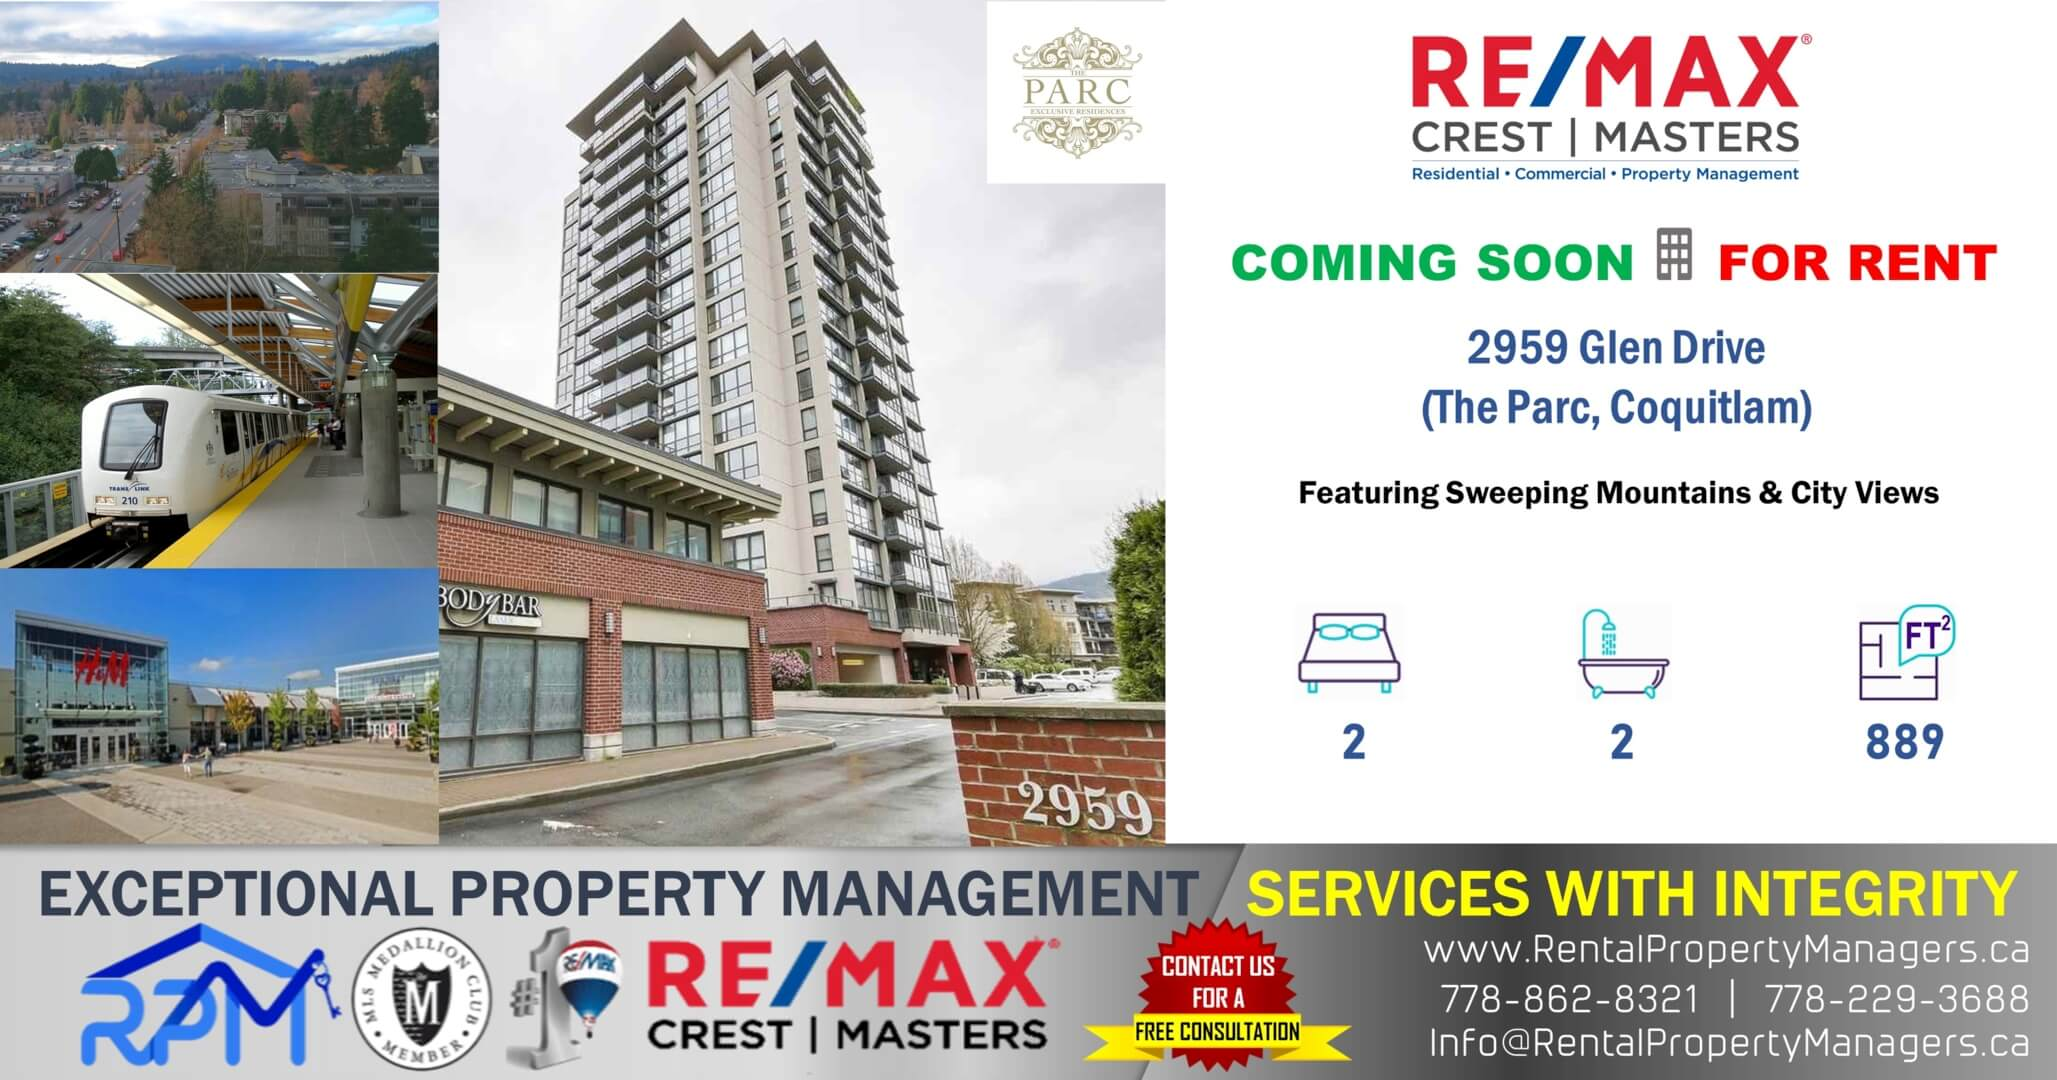 [COMING SOON] 2959 Glen Drive, Coquitlam (The Parc), 2Bedroom+2Bath (889Ft+Balcony)